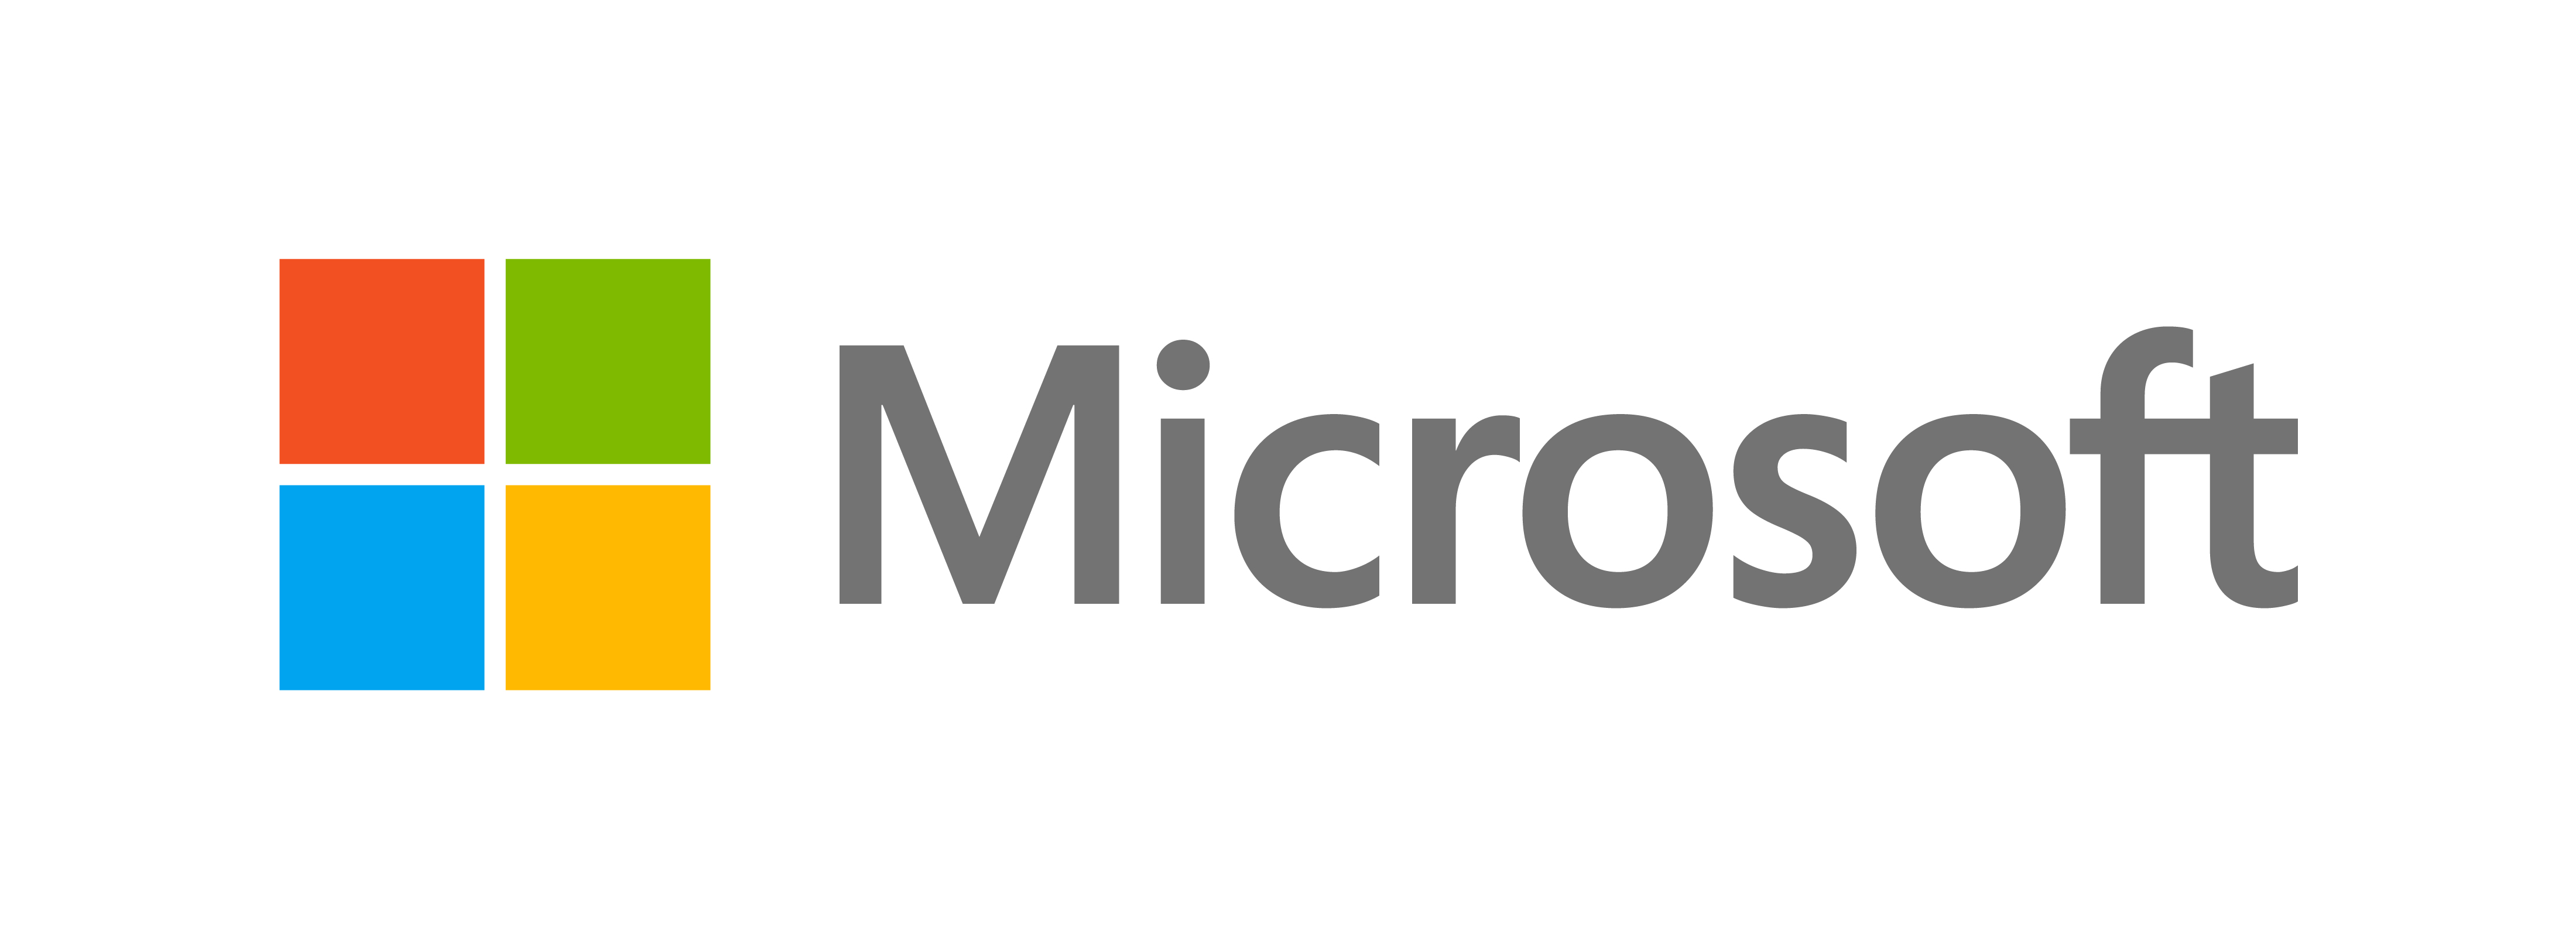 8867.Microsoft_5F00_Logo_2D00_for_2D00_screen